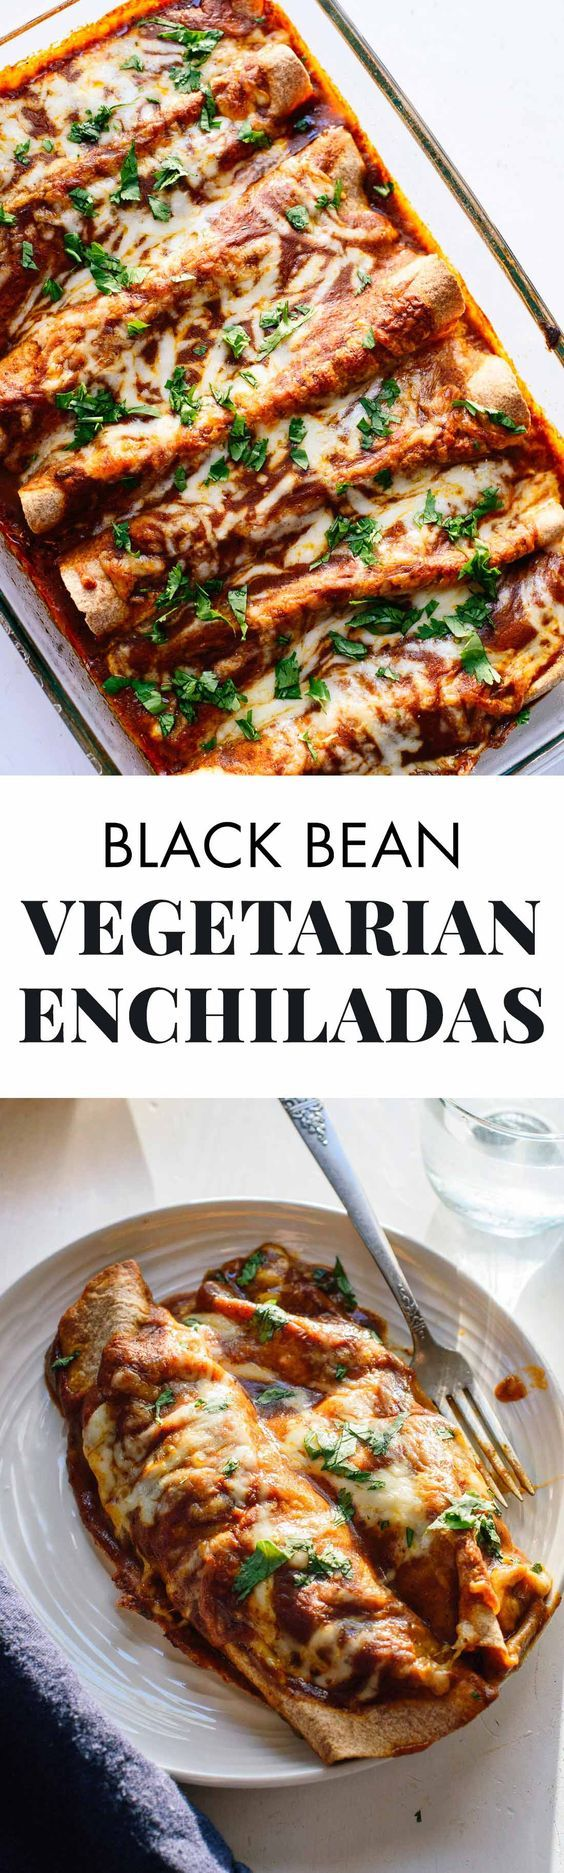 Delicious vegetable enchiladas recipe with black beans and homemade red sauce - cookieandkate.com